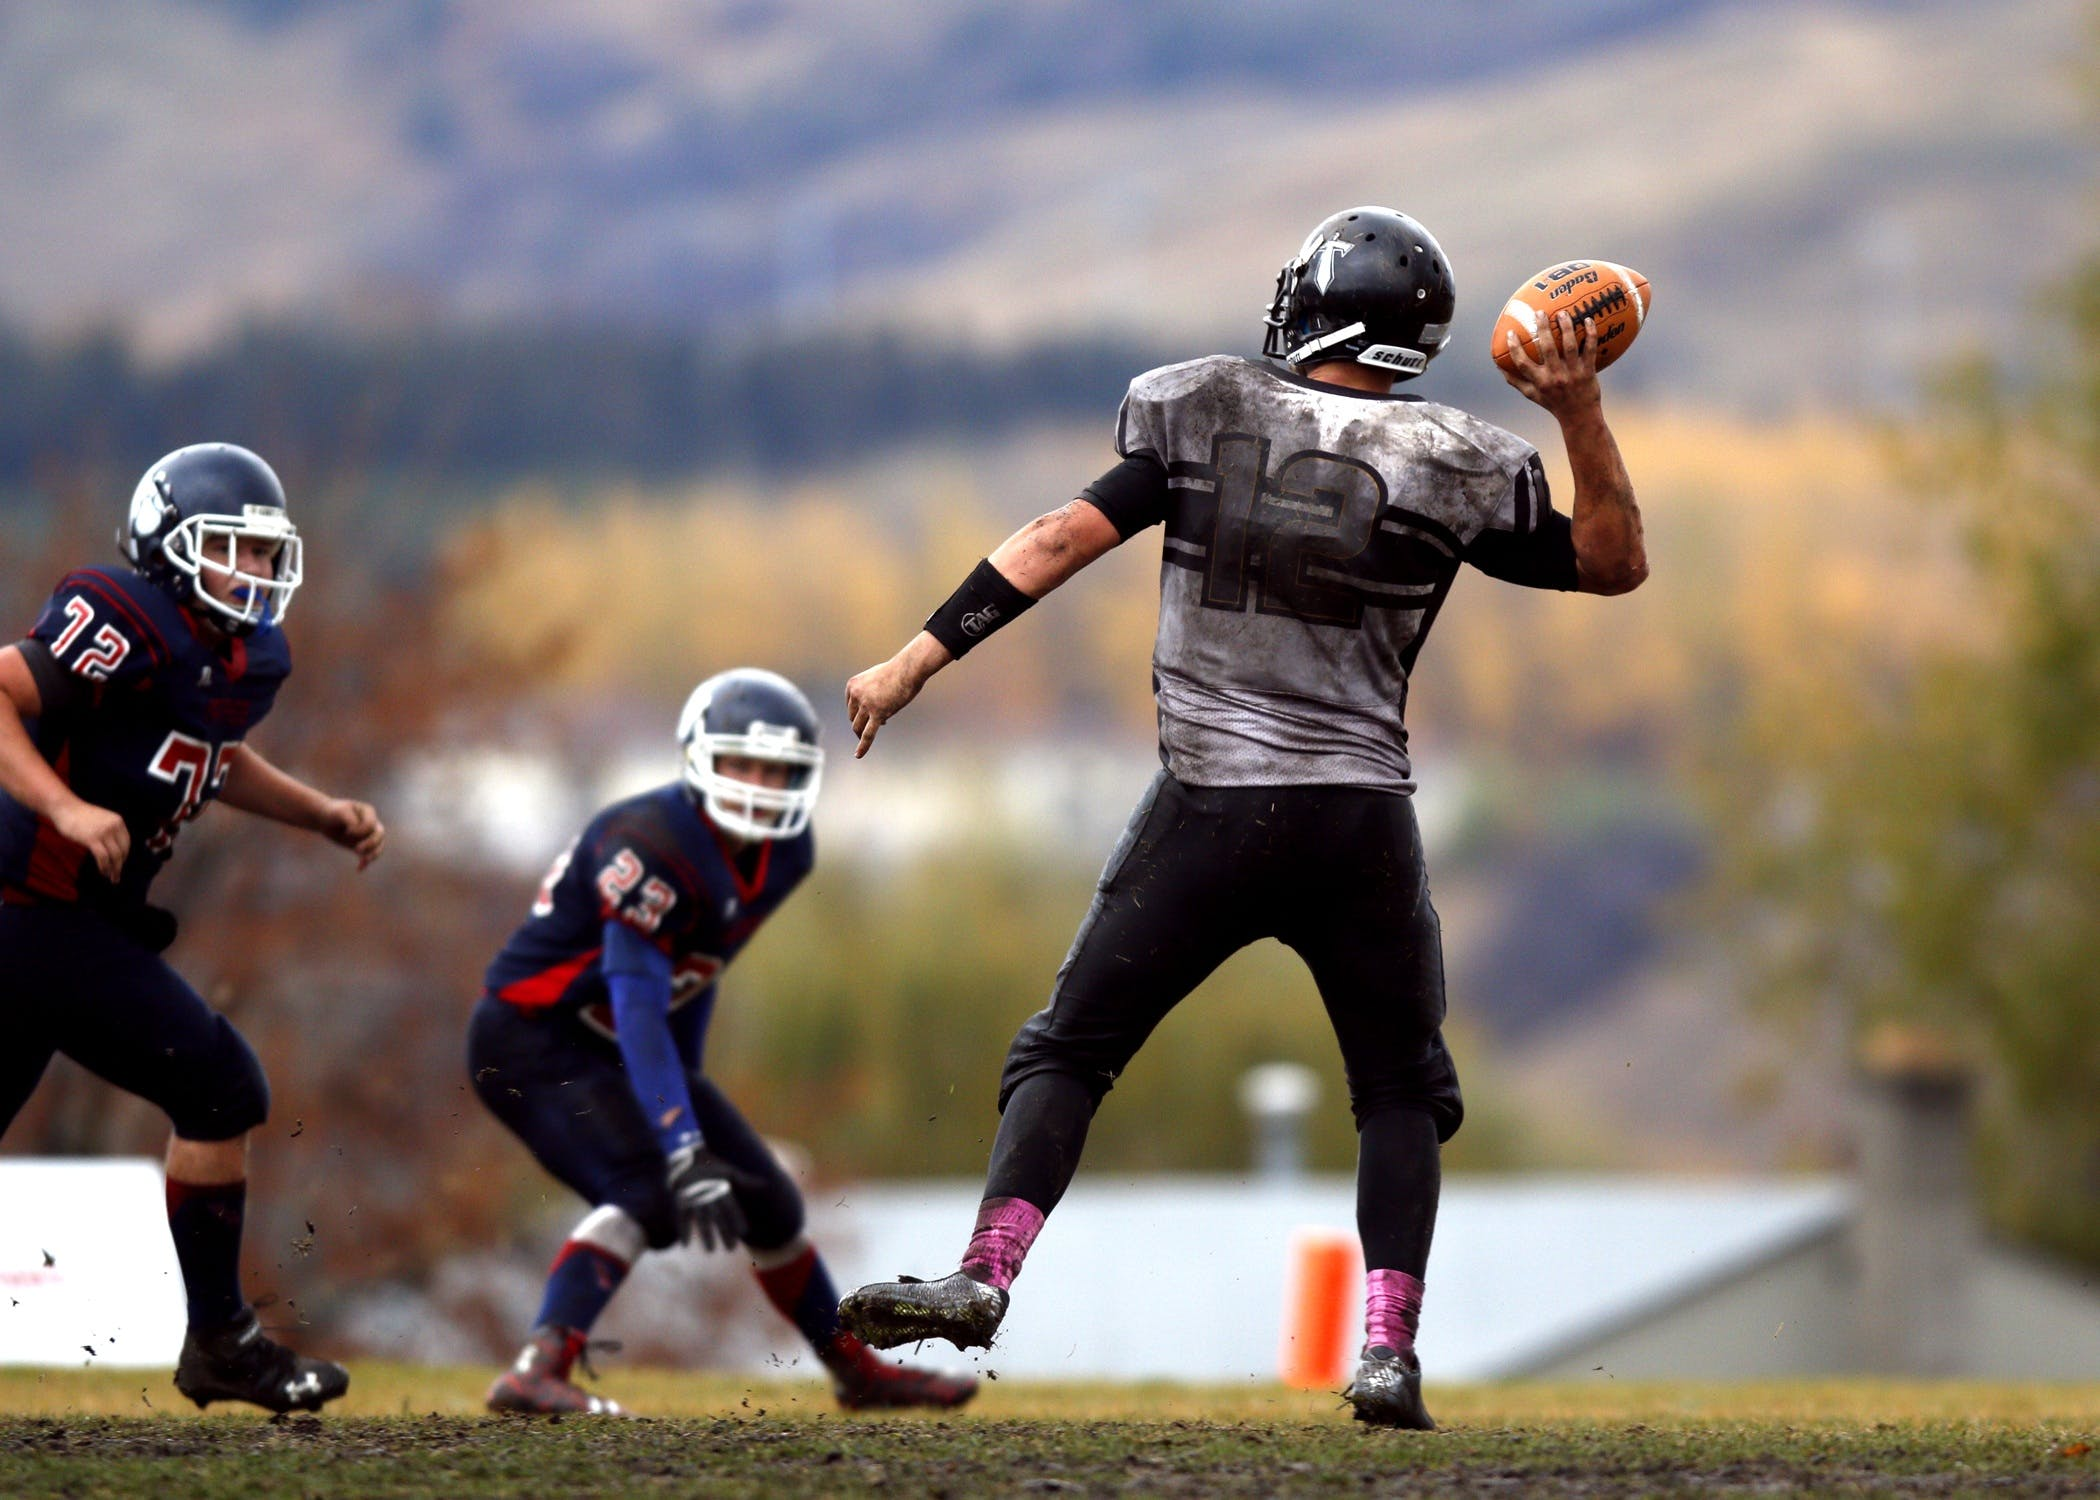 2 Football Player Running After Person Holding Football during Daytime in Shallow Focus Photography